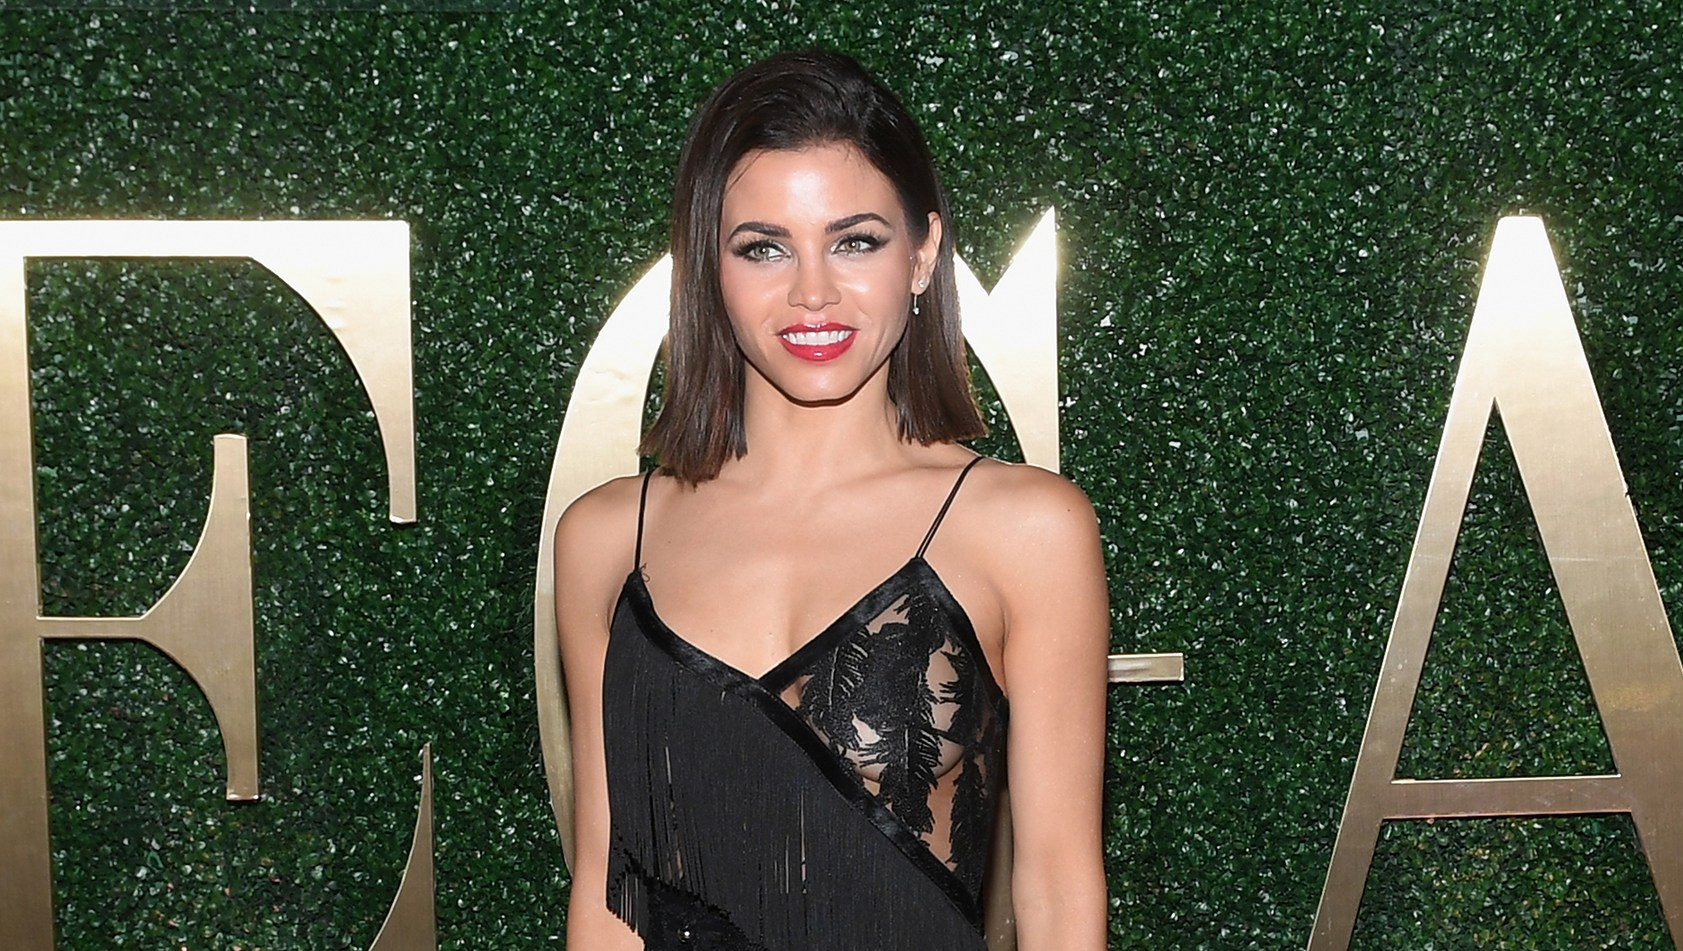 Jenna Dewan arrives at VEGAS Magazine's 15th anniversary party